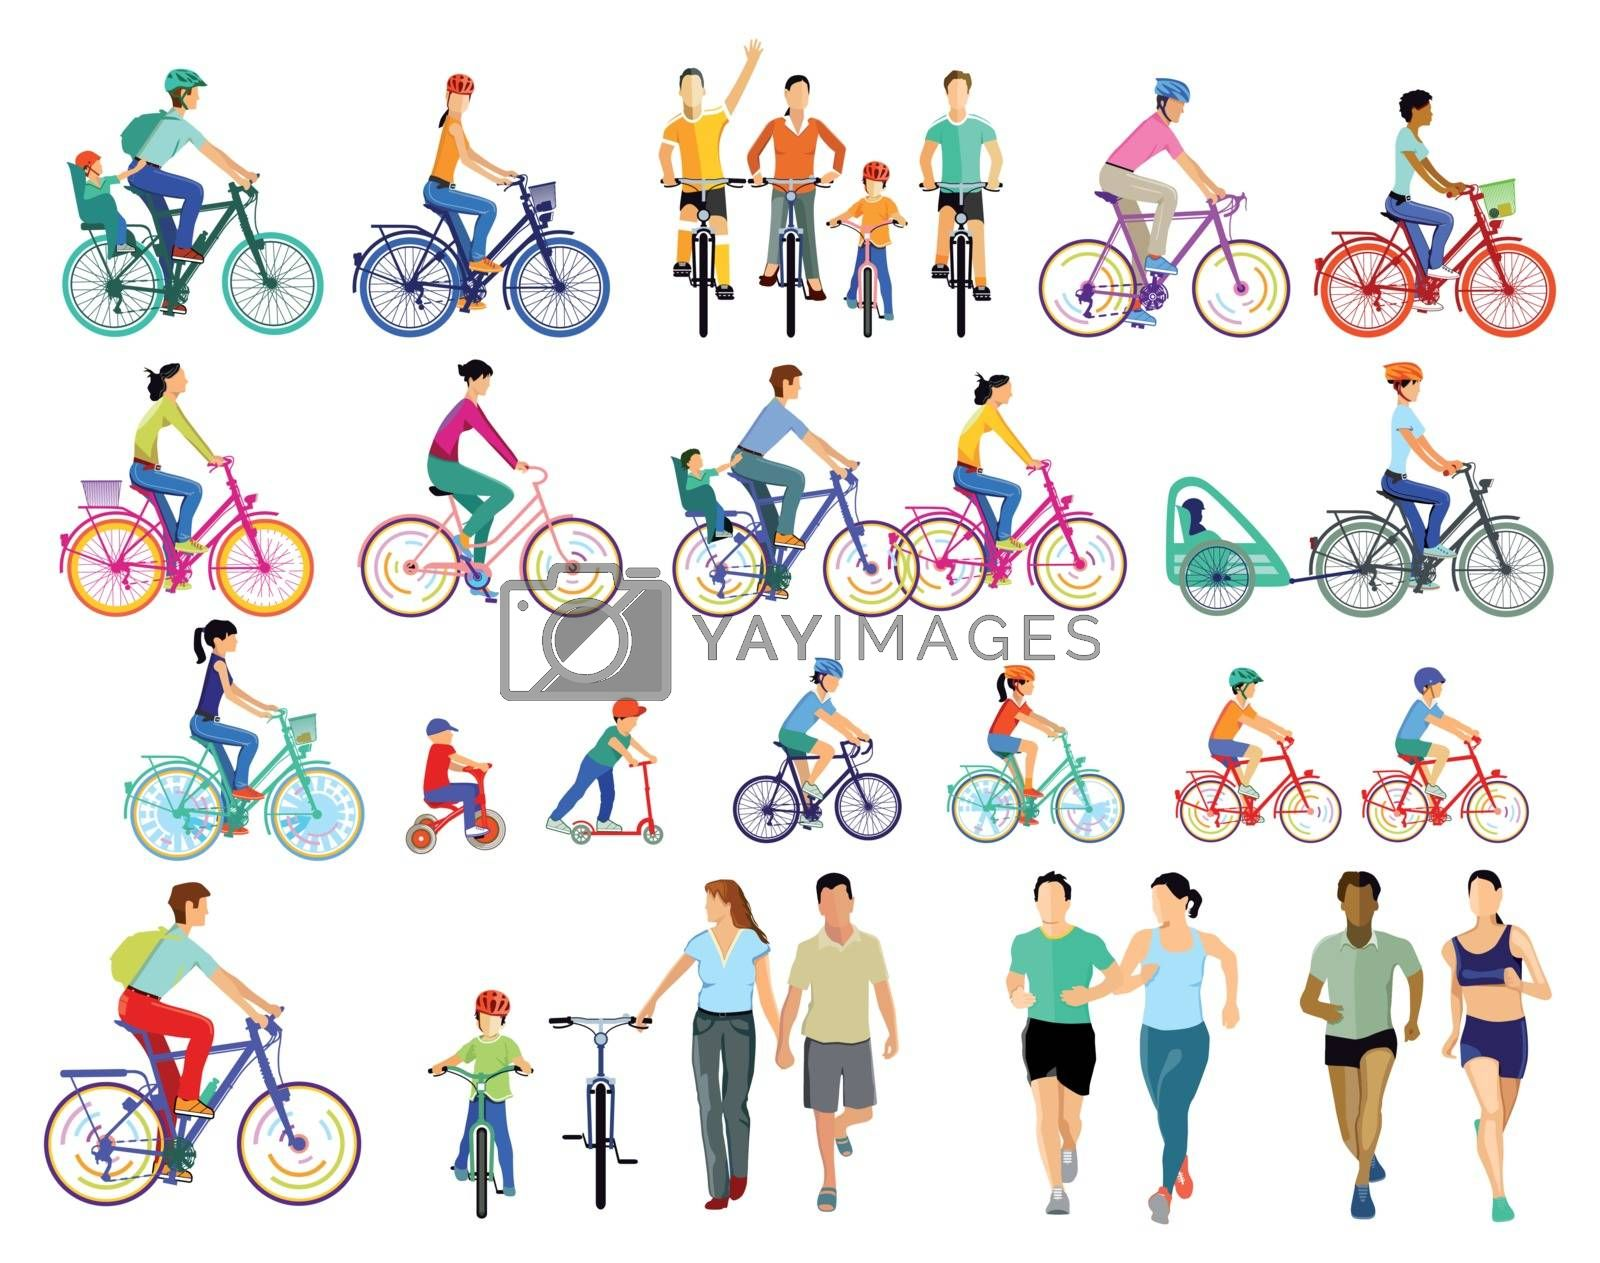 Group of cyclists illustration